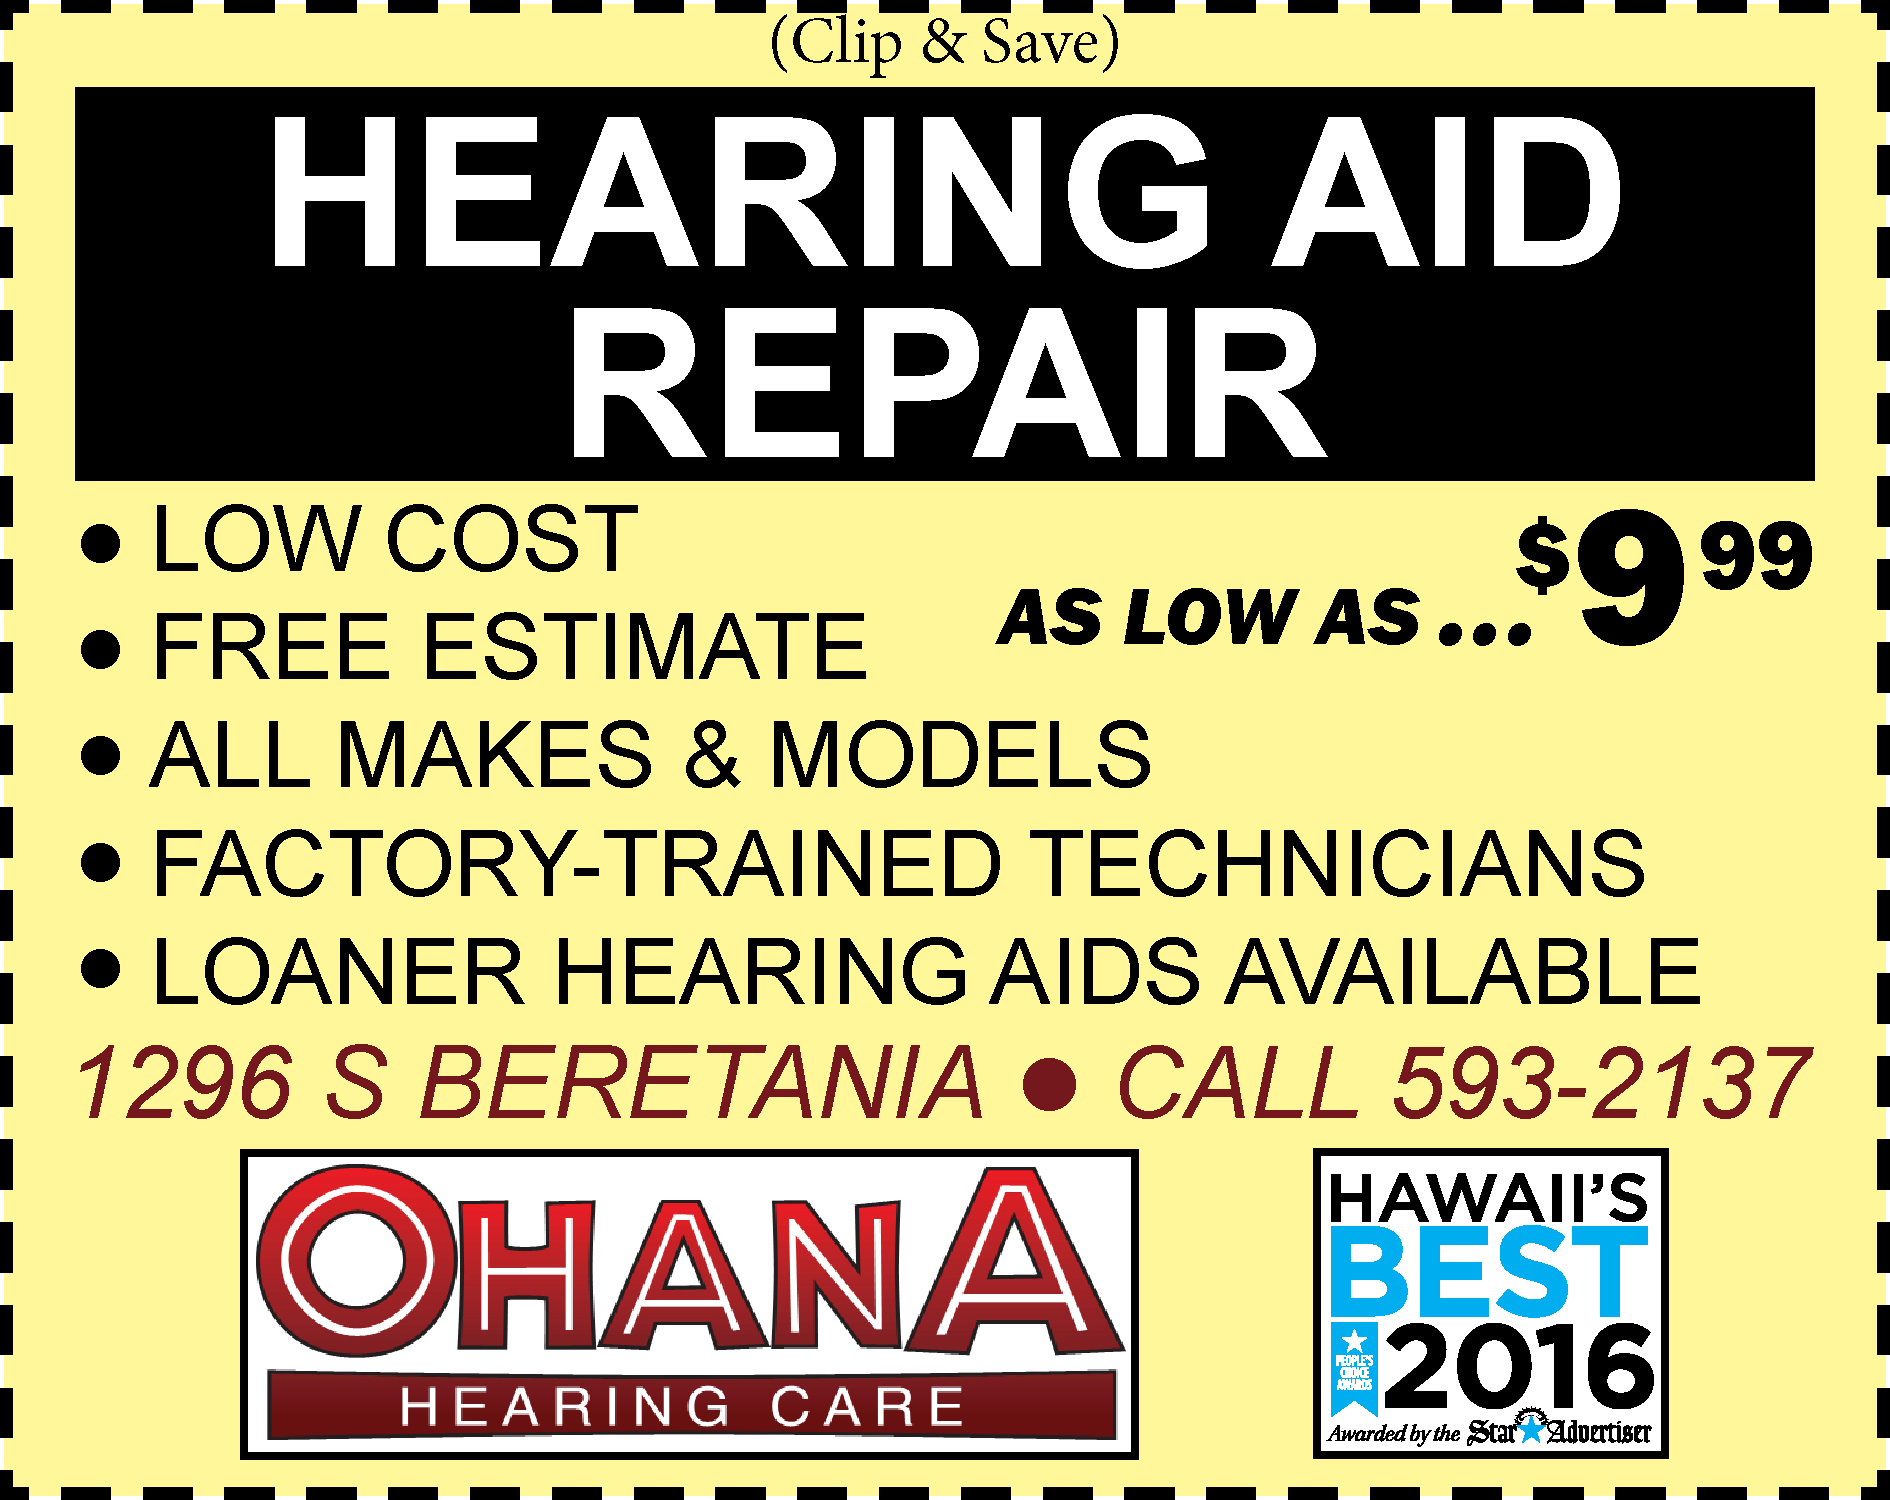 5 NEW Color Vintage Hearing Aid Repair ad coupon page..jpg